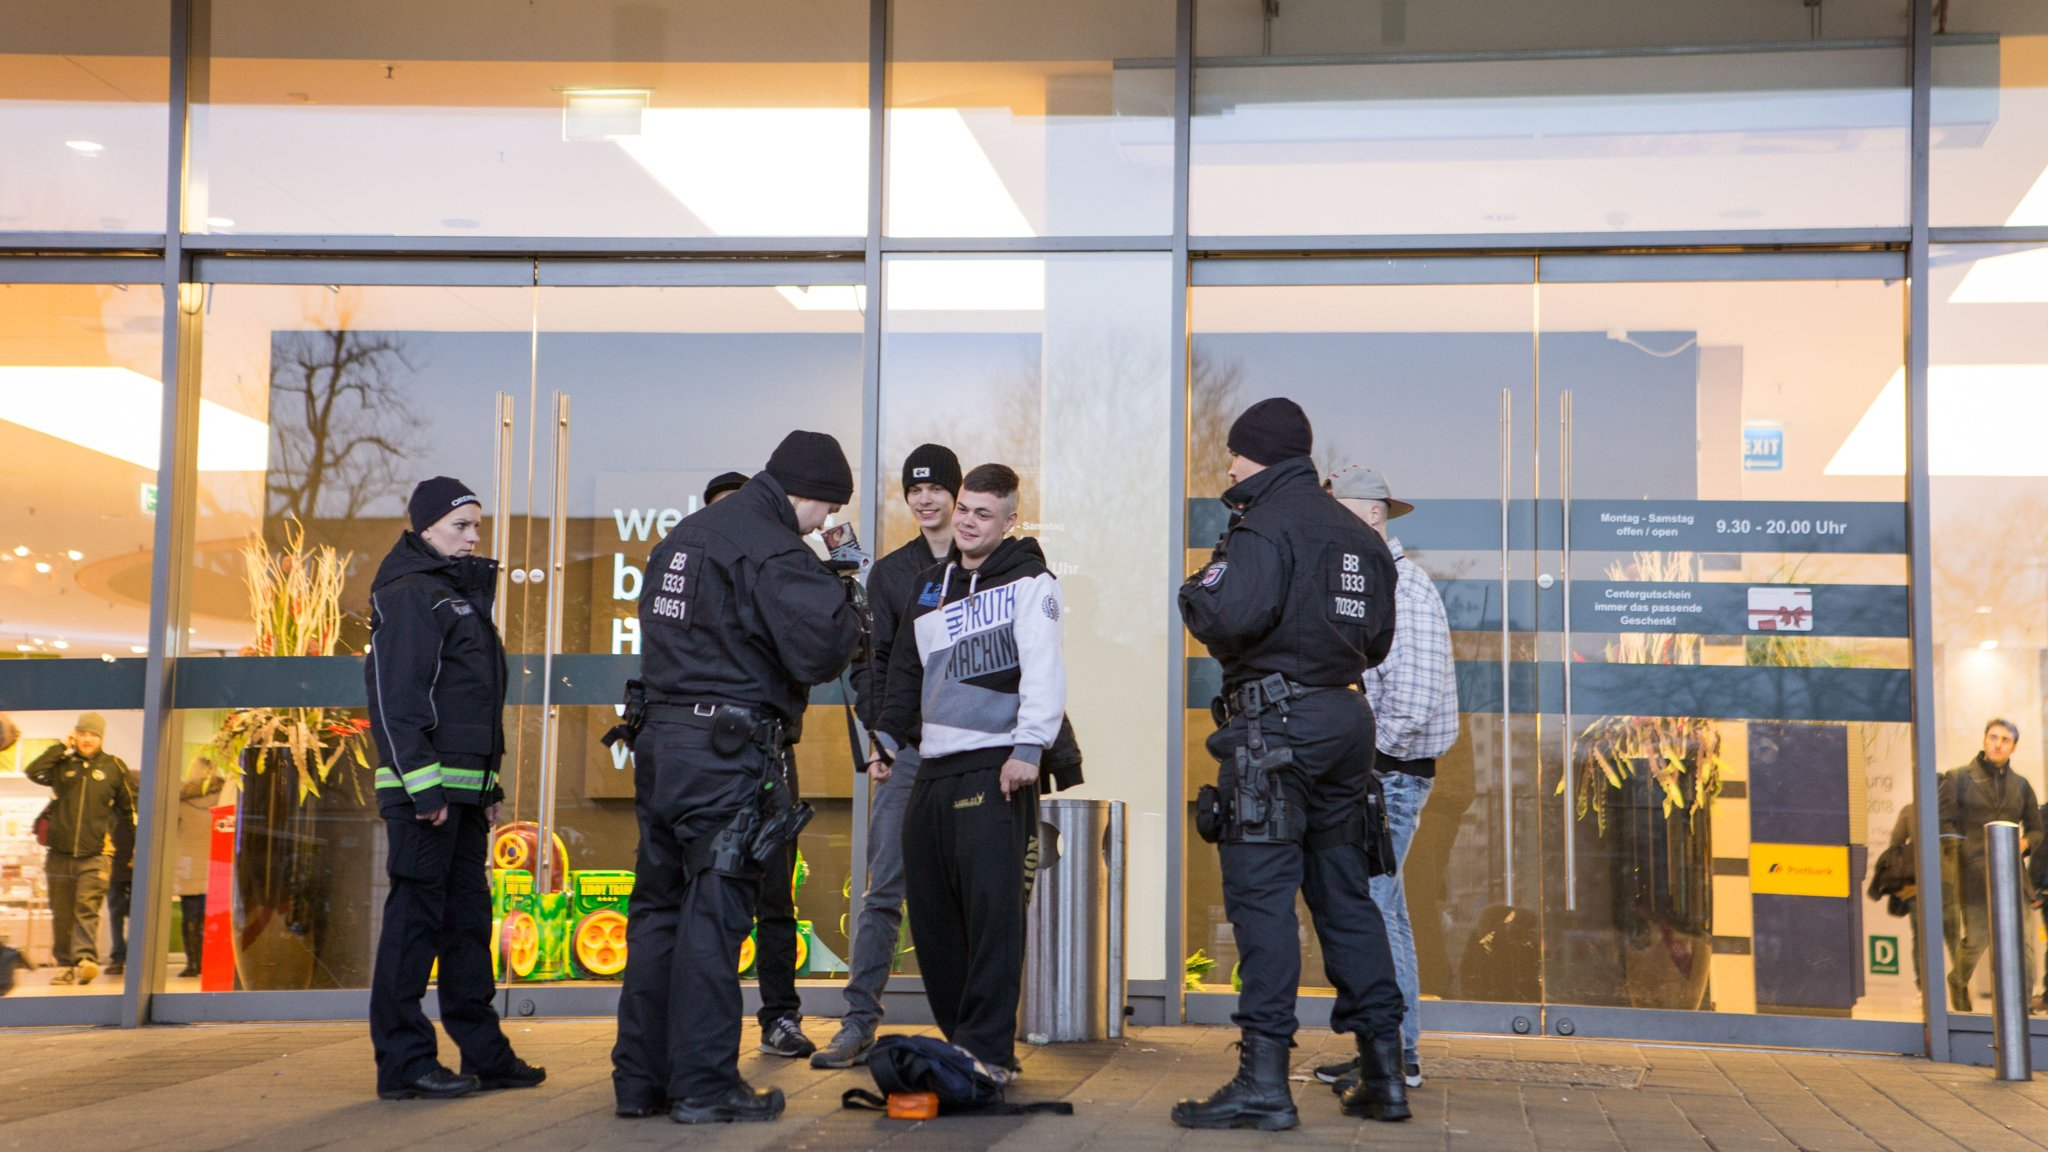 German police flex muscles to calm Cottbus refugee tensions